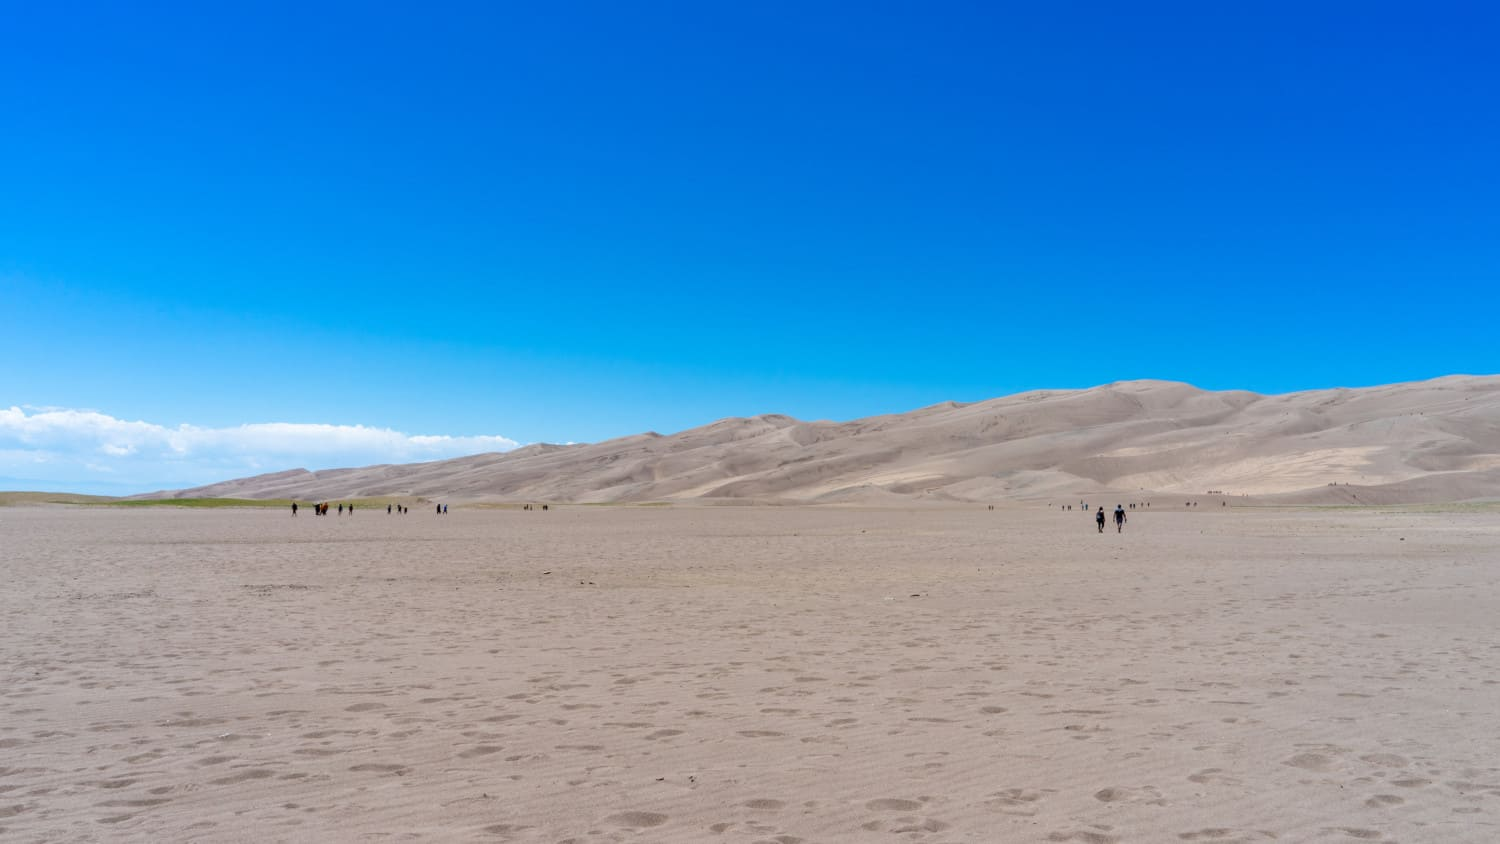 Pet friendly dunefield at Great Sand Dunes National Park in Colorado